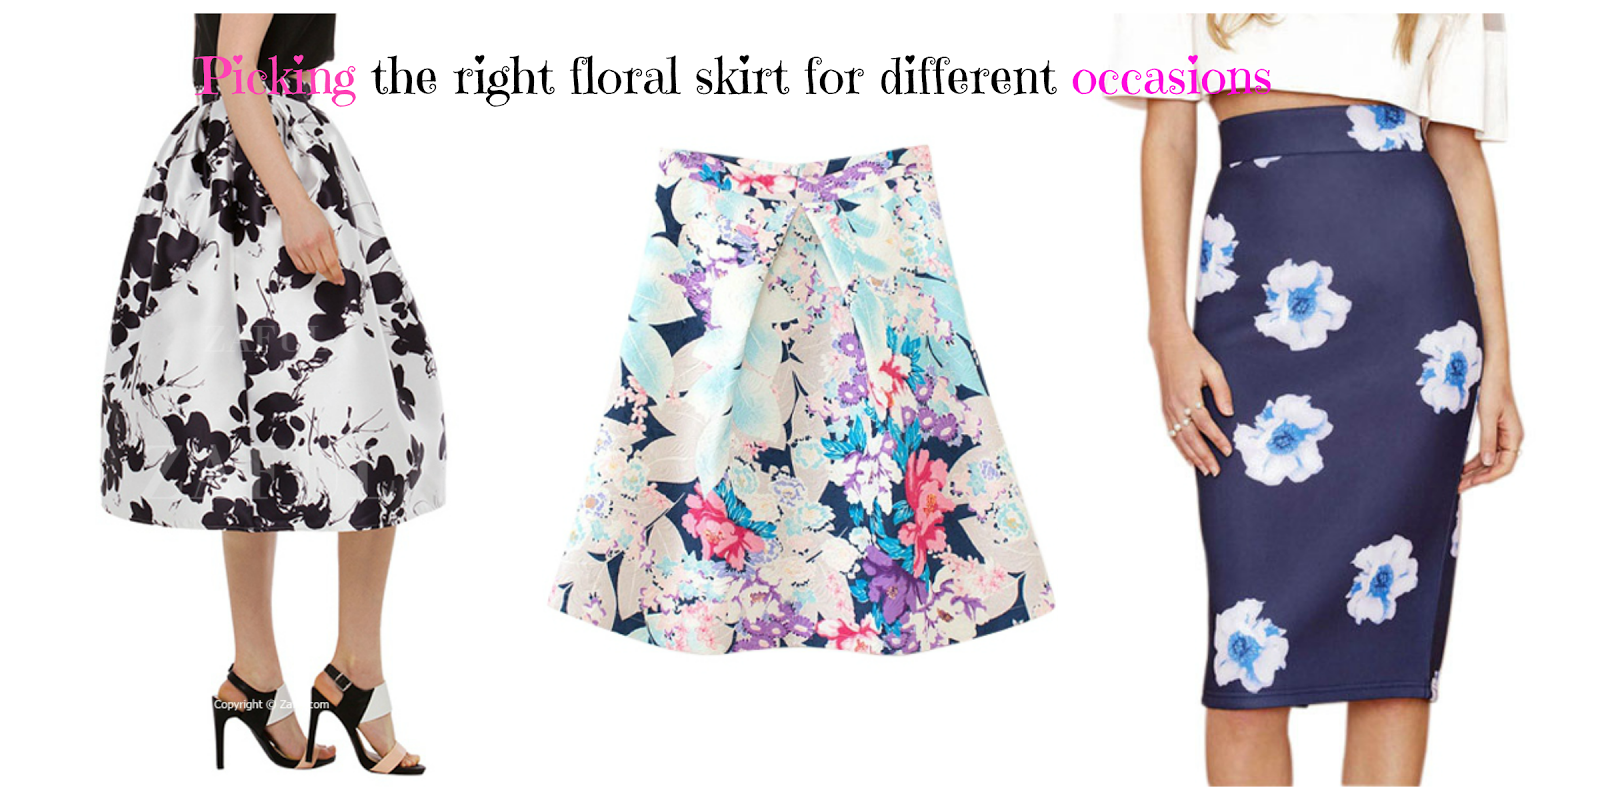 Rethink the way you pick your floral skirts when going to an event.